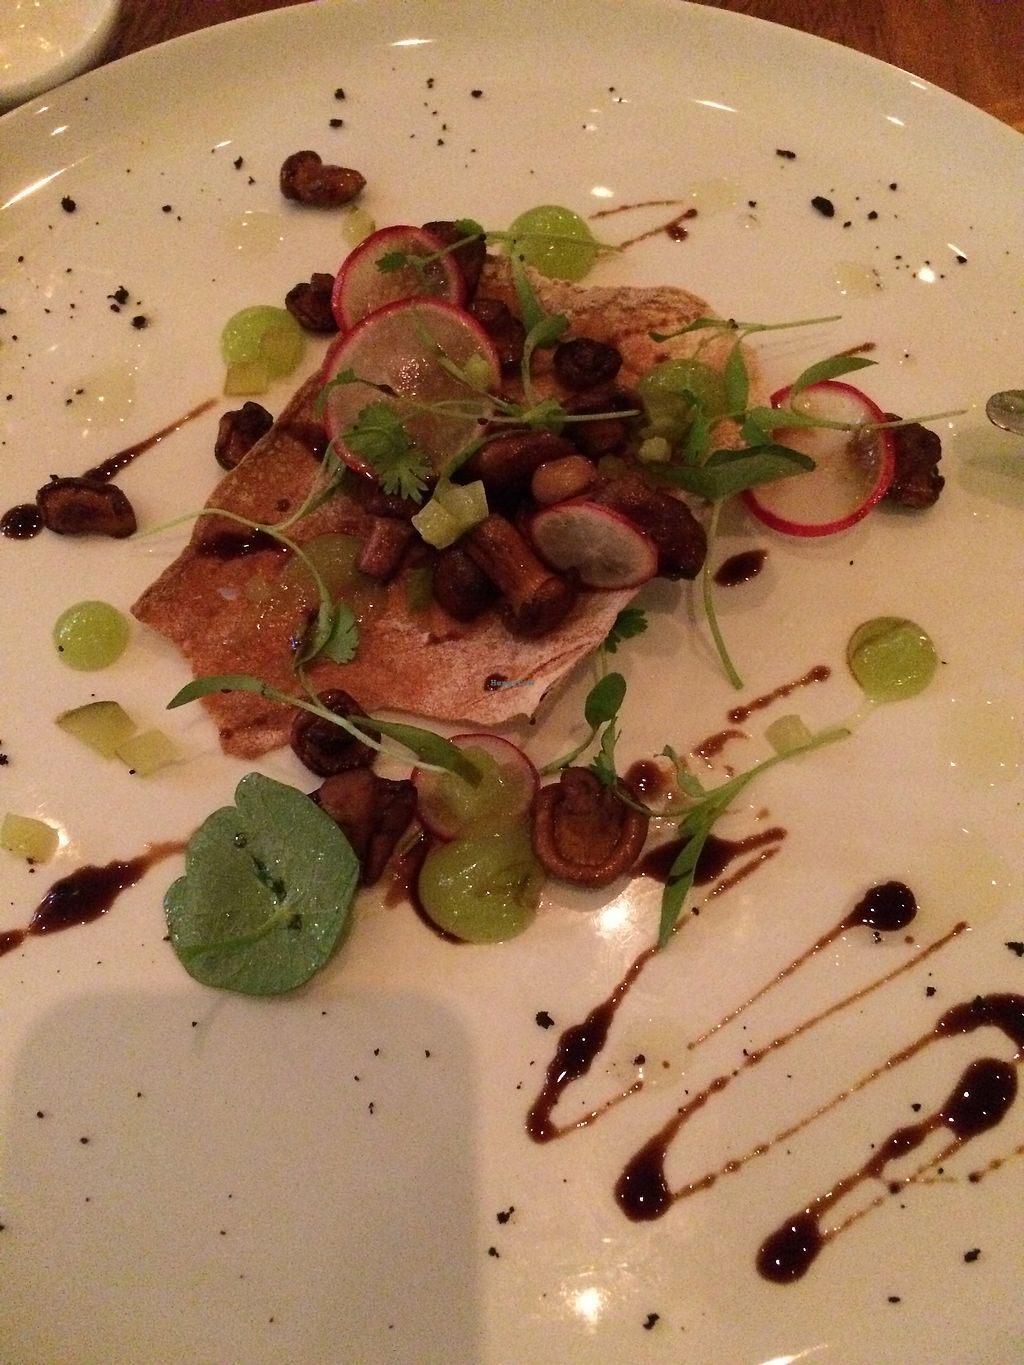 """Photo of Restaurant 27  by <a href=""""/members/profile/EvaWilson"""">EvaWilson</a> <br/>mushroom on toast <br/> July 16, 2017  - <a href='/contact/abuse/image/96326/280982'>Report</a>"""